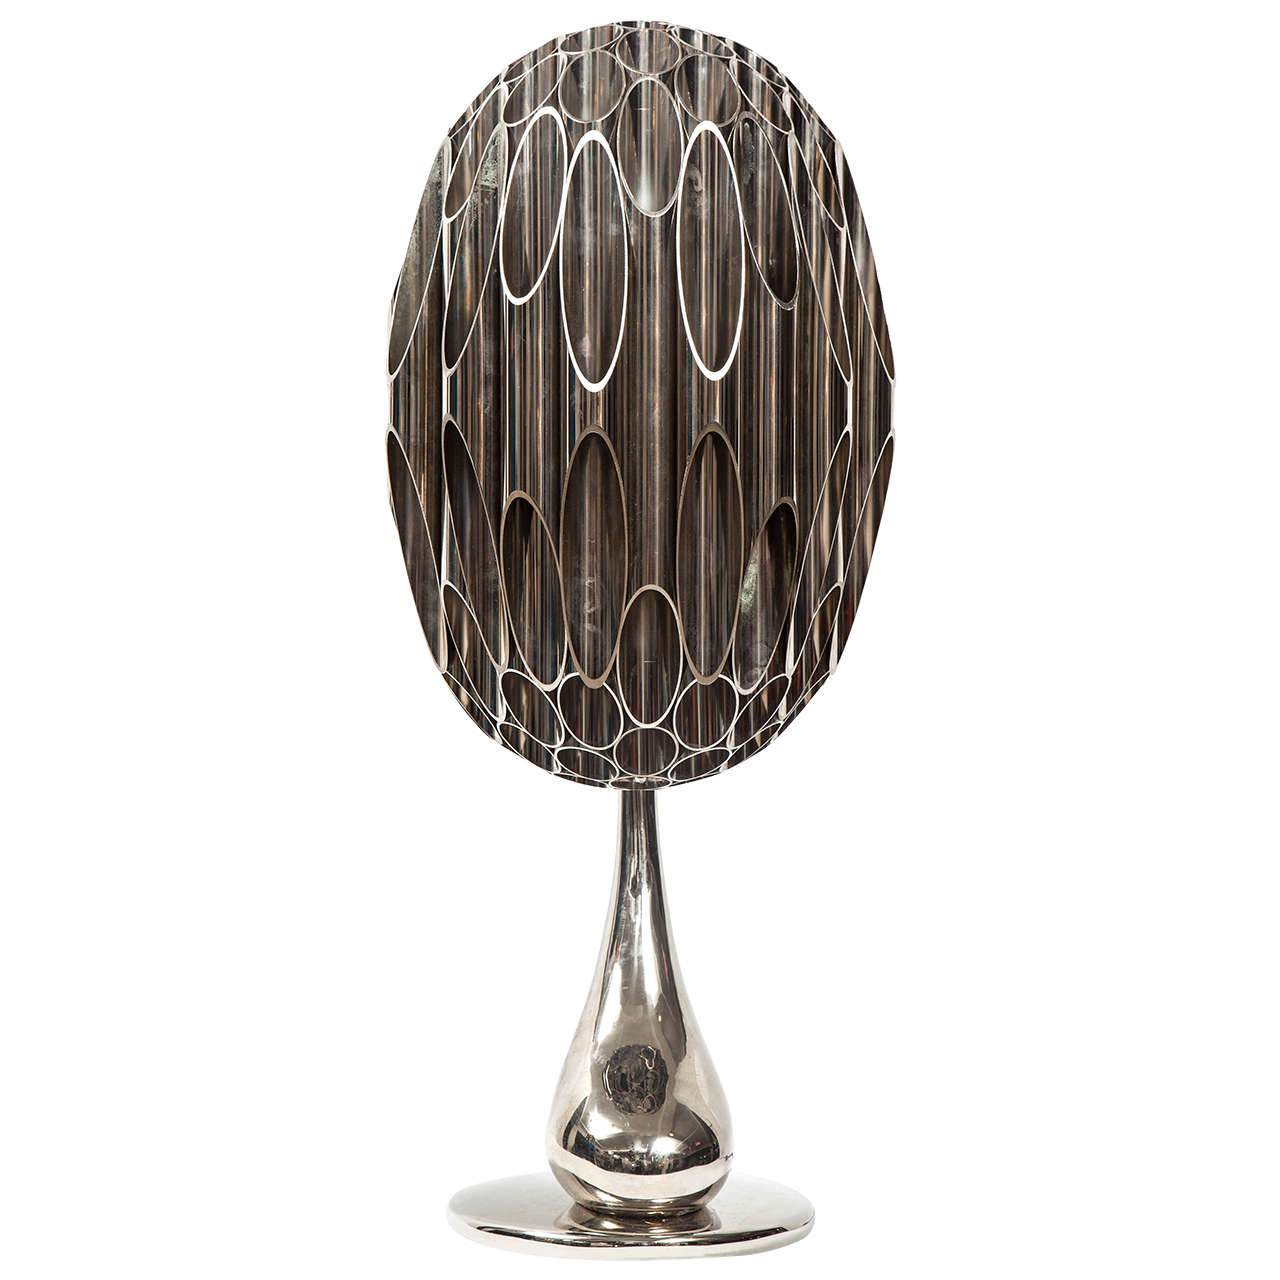 Maison charles et fils table lamps 96 for sale at 1stdibs